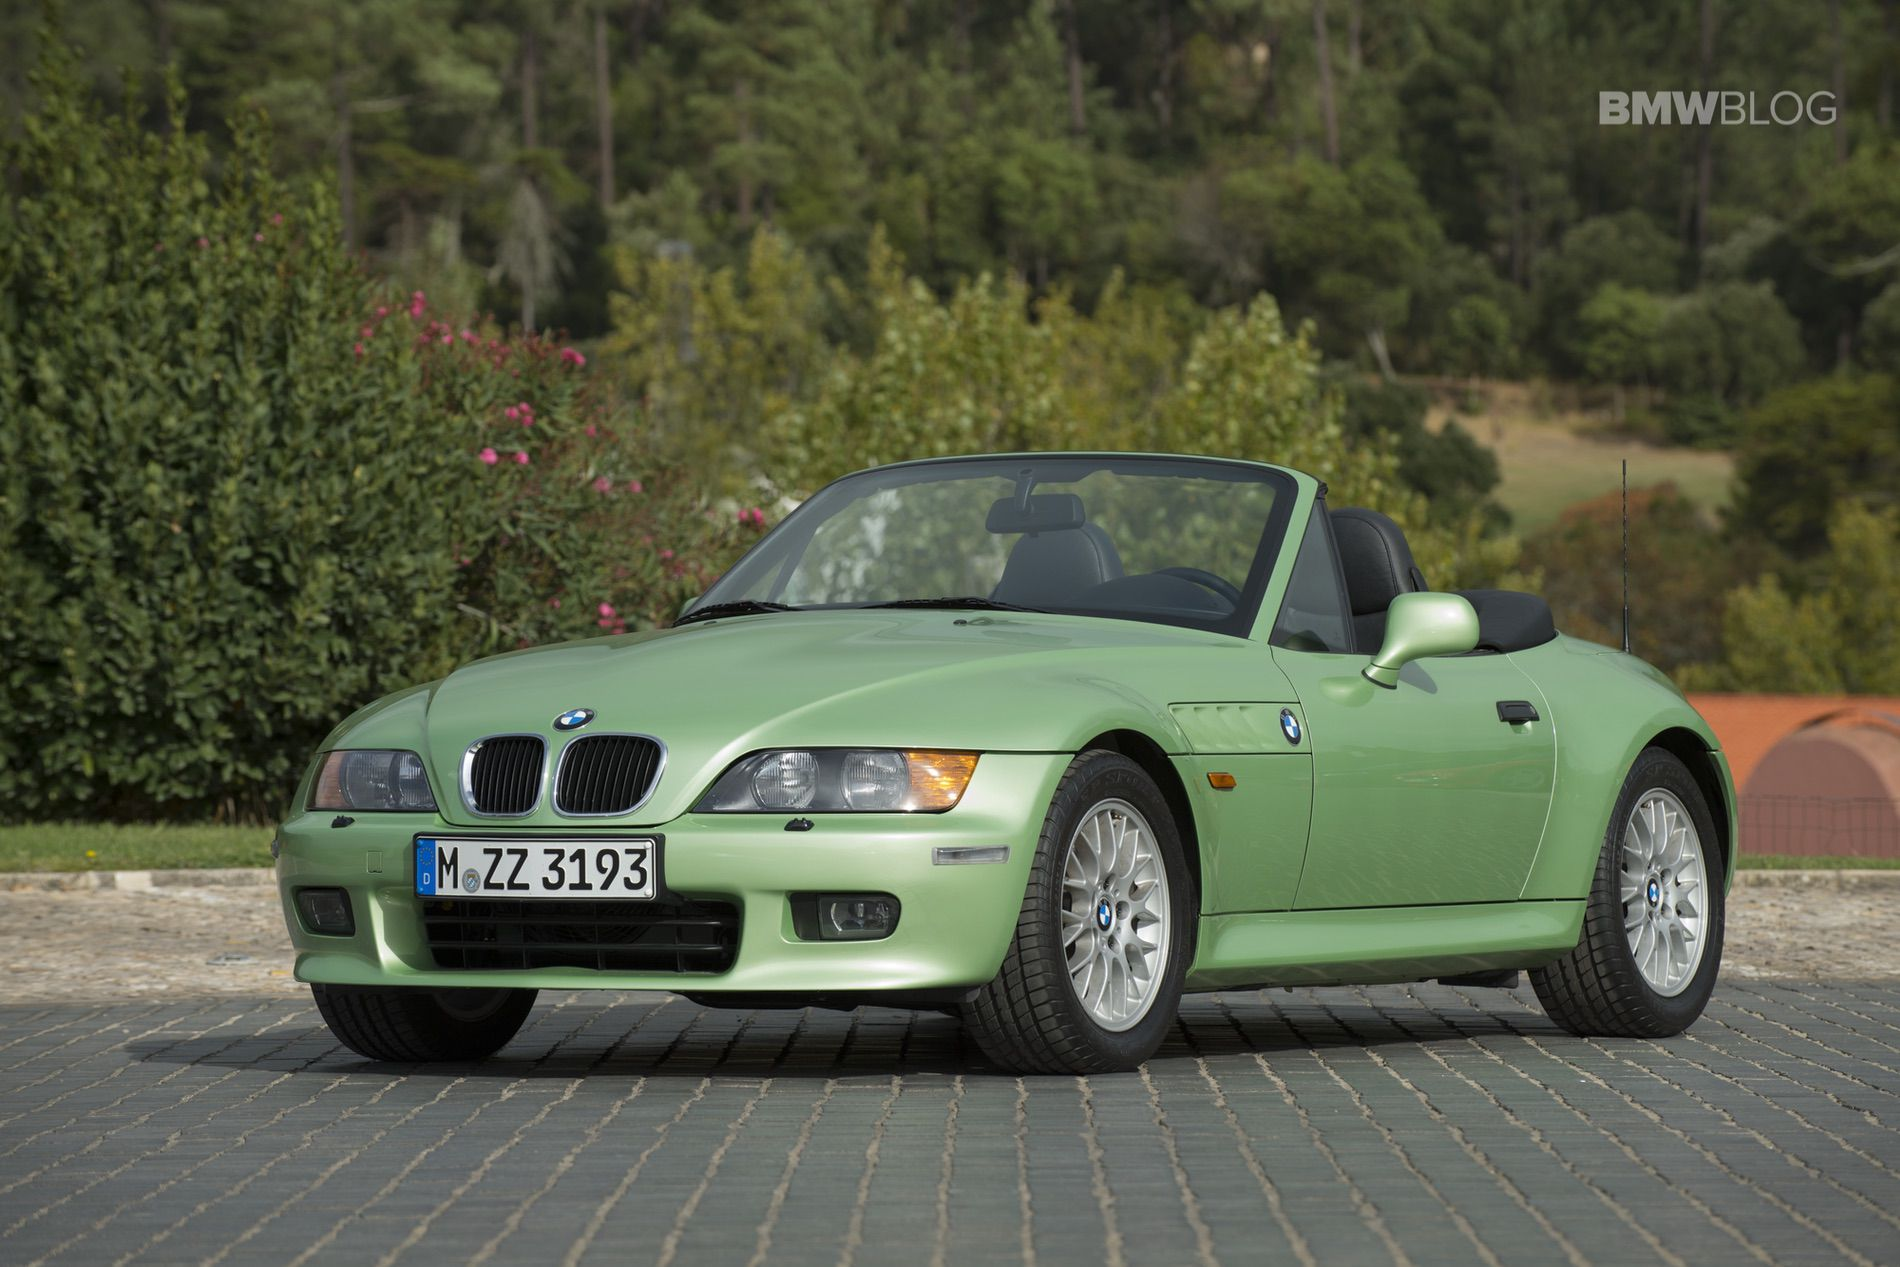 Stunning Bmw Z3 Roadster In Palmetto Green